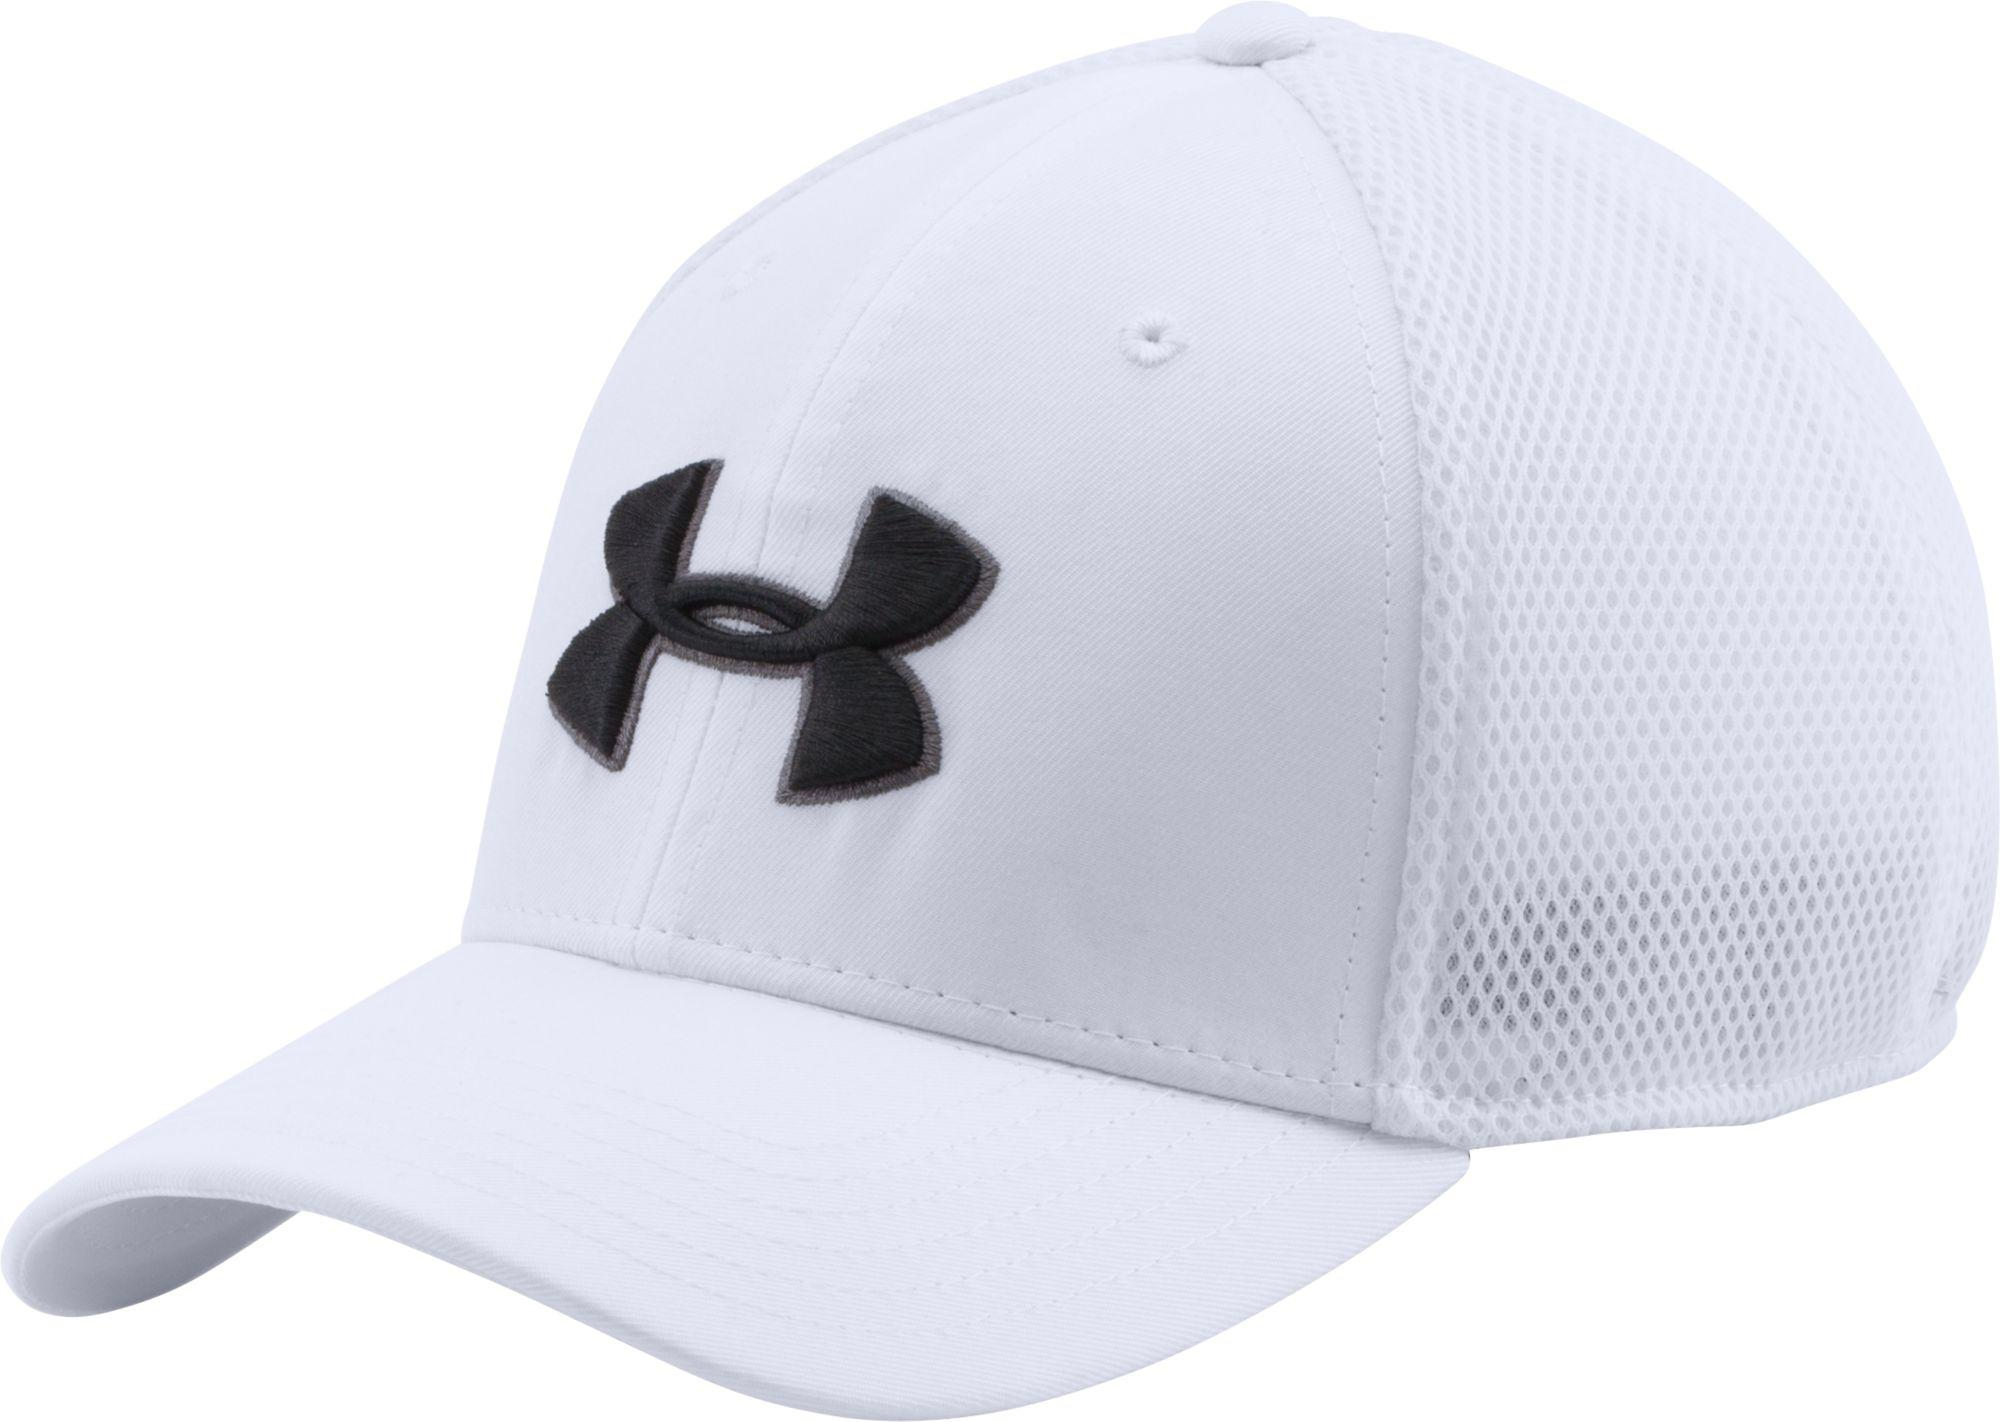 7671e95f4cd Lyst - Under Armour Mesh Stretch 2.0 Golf Hat in White for Men